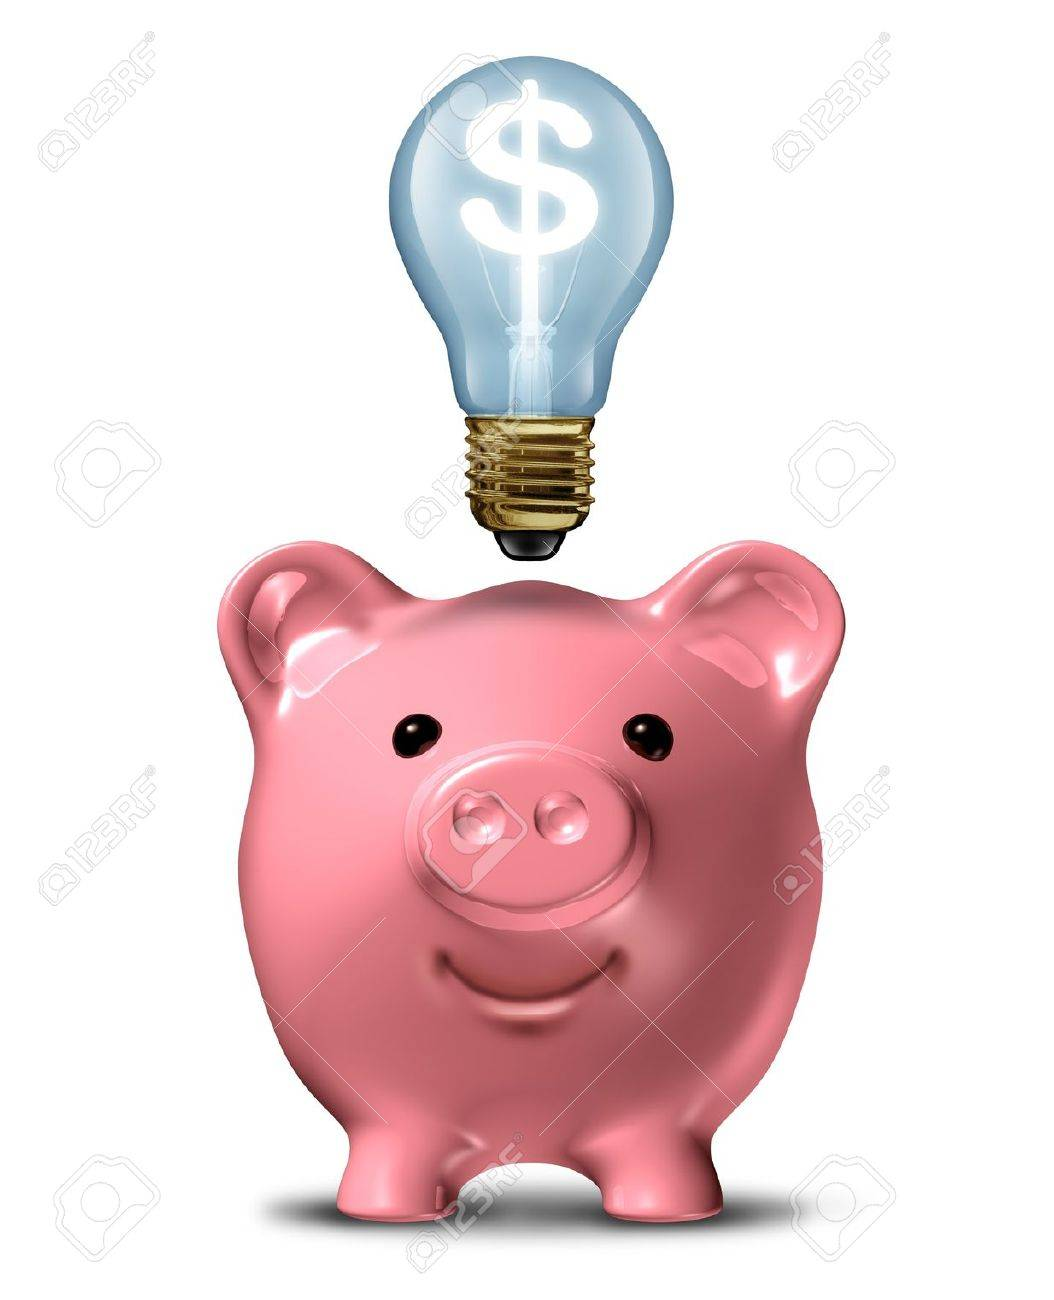 Pink piggy bank with an idea light bulb with a dollar sign shinning bright on a white background Stock Photo - 12667595